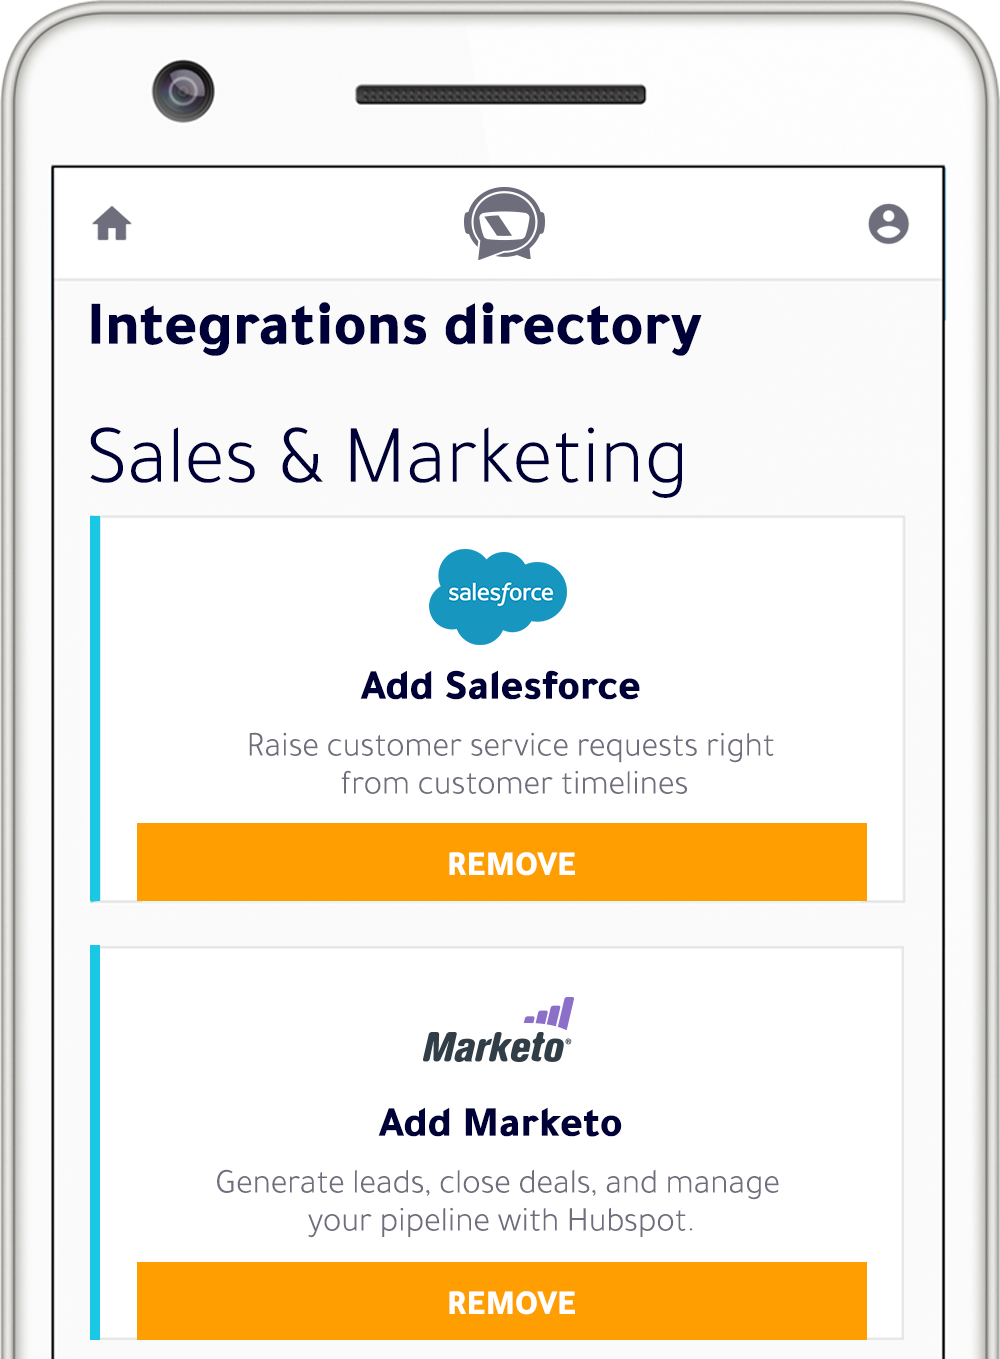 Sales and Marketing Integrations directory. Add Salesforce. Add Marketo.